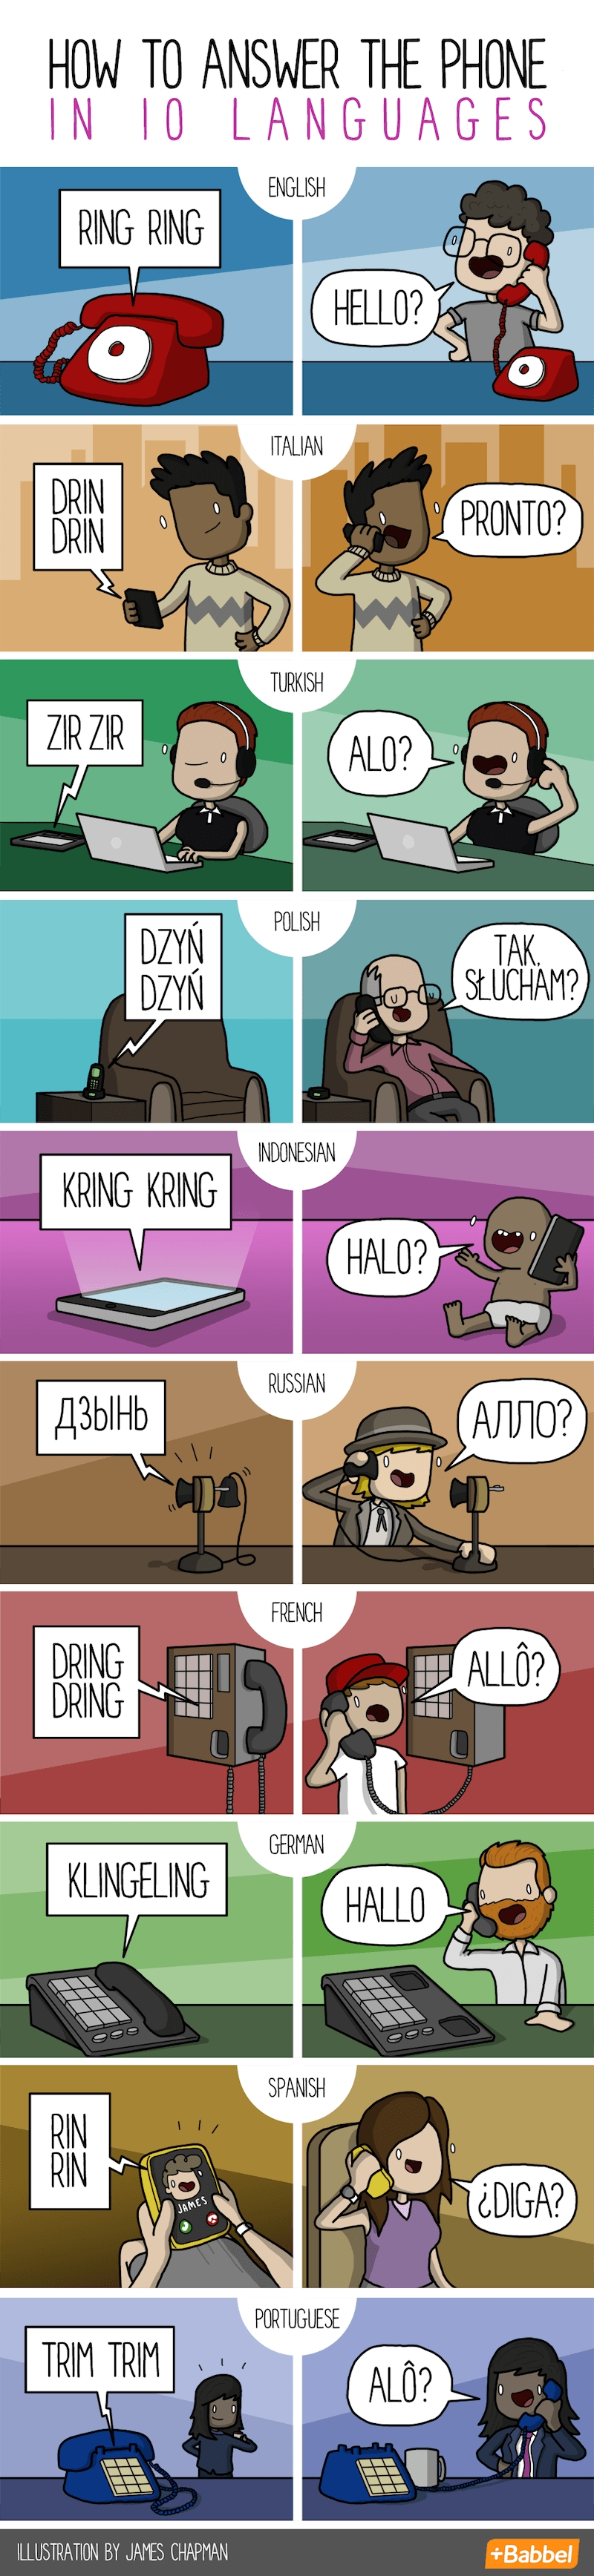 say hello in different languages